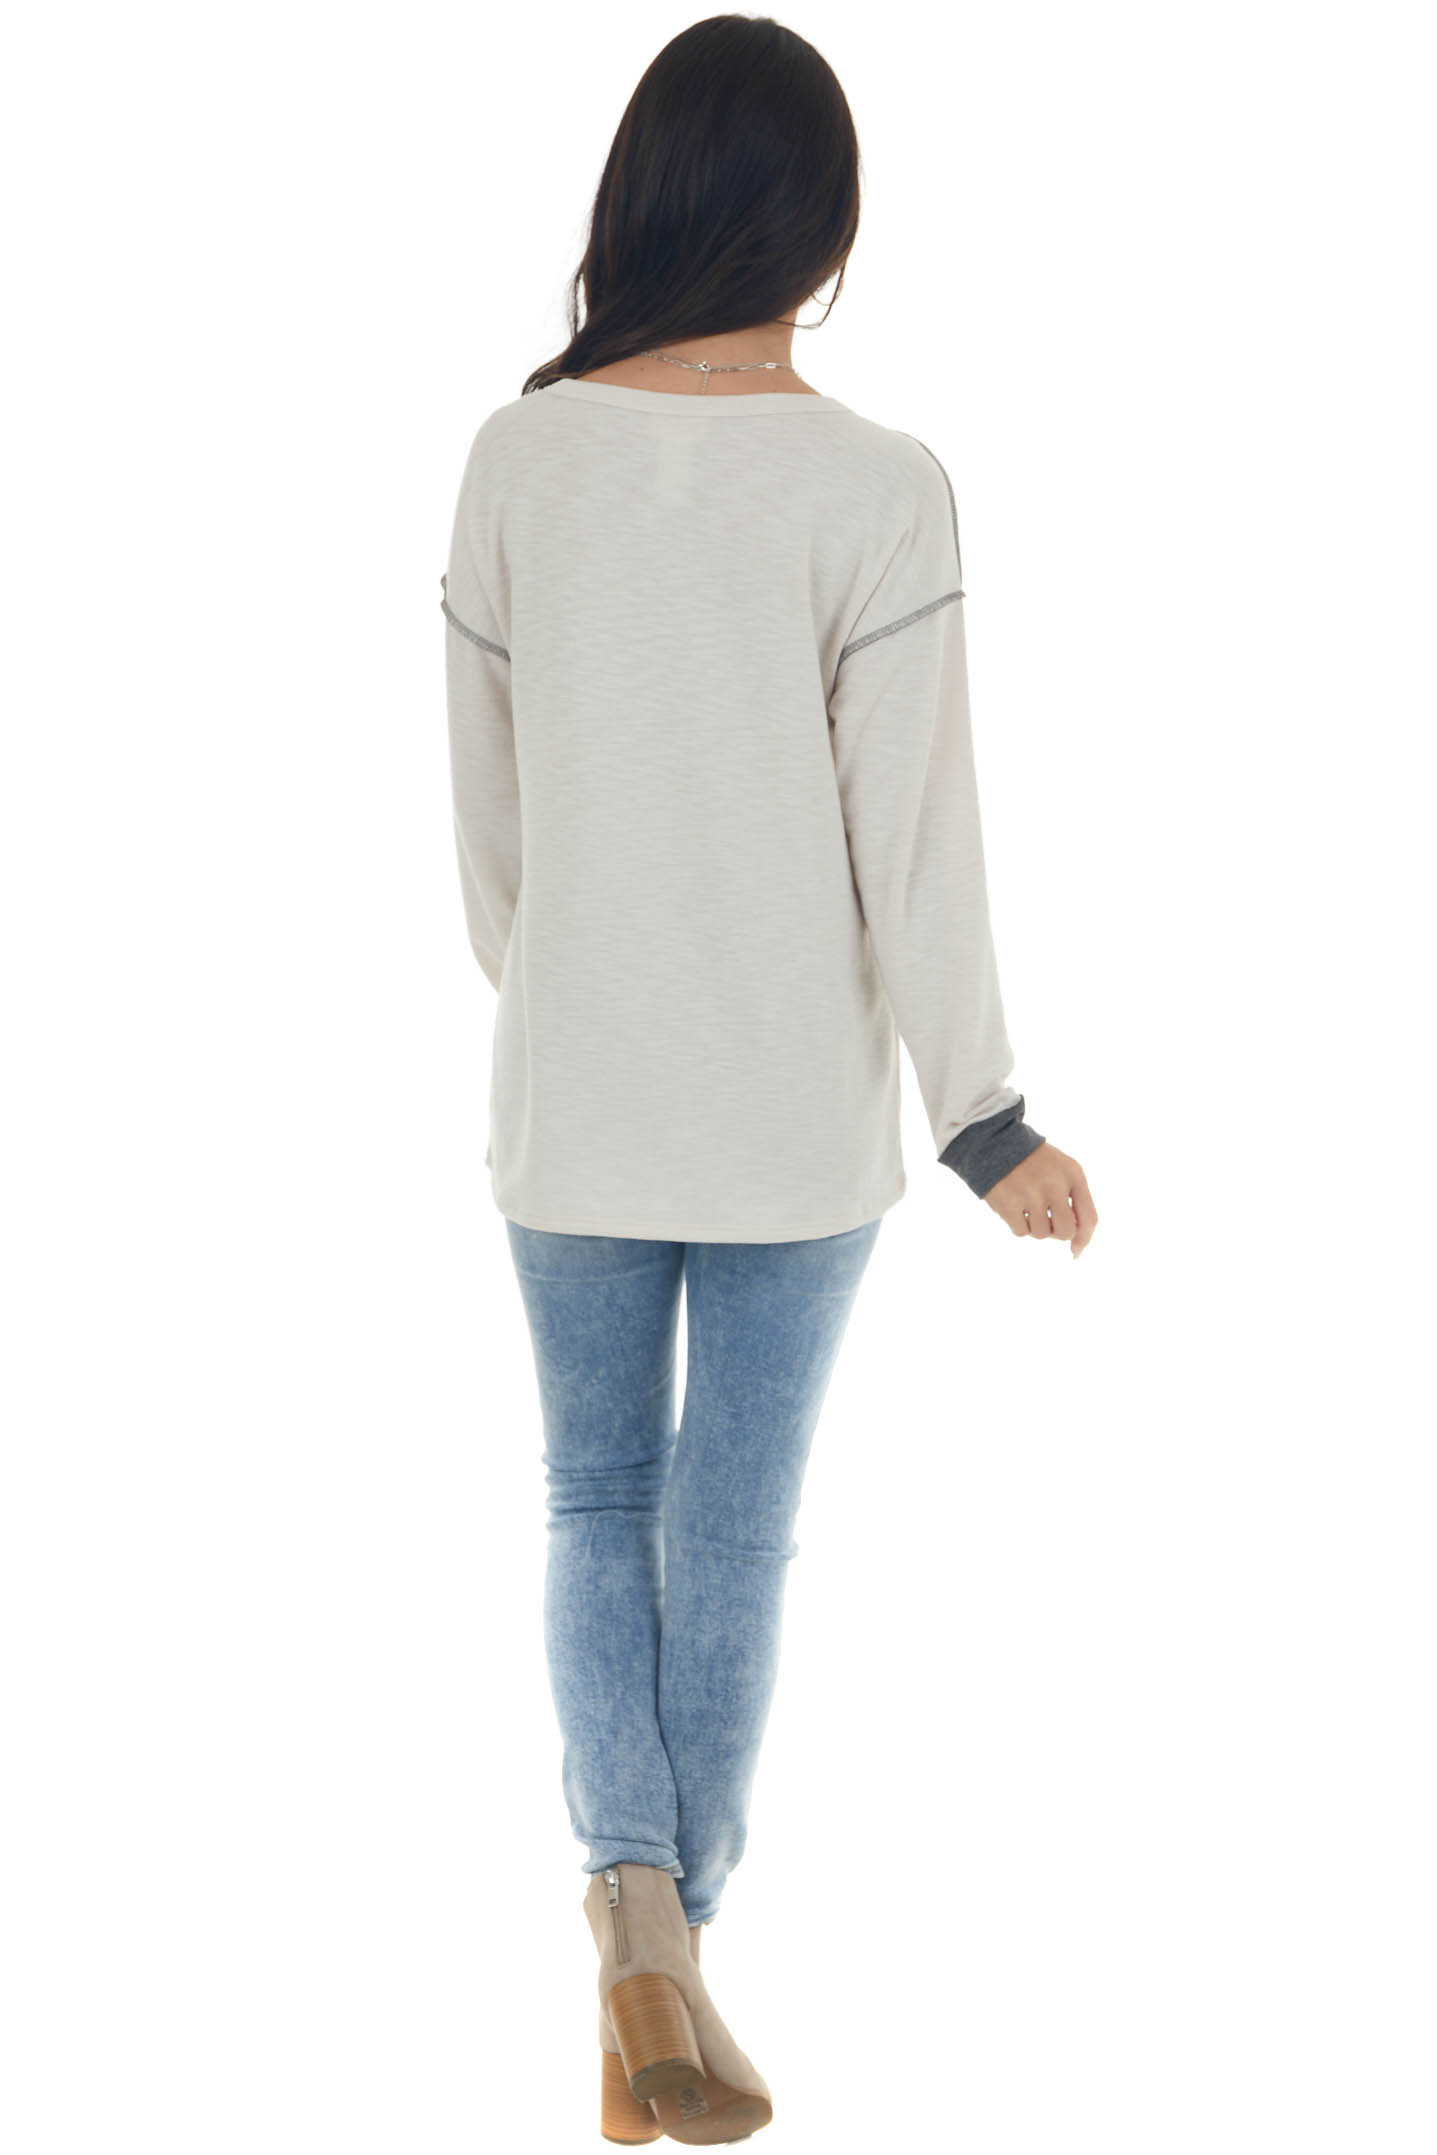 Charcoal and Cream Button Detailed Knit Top